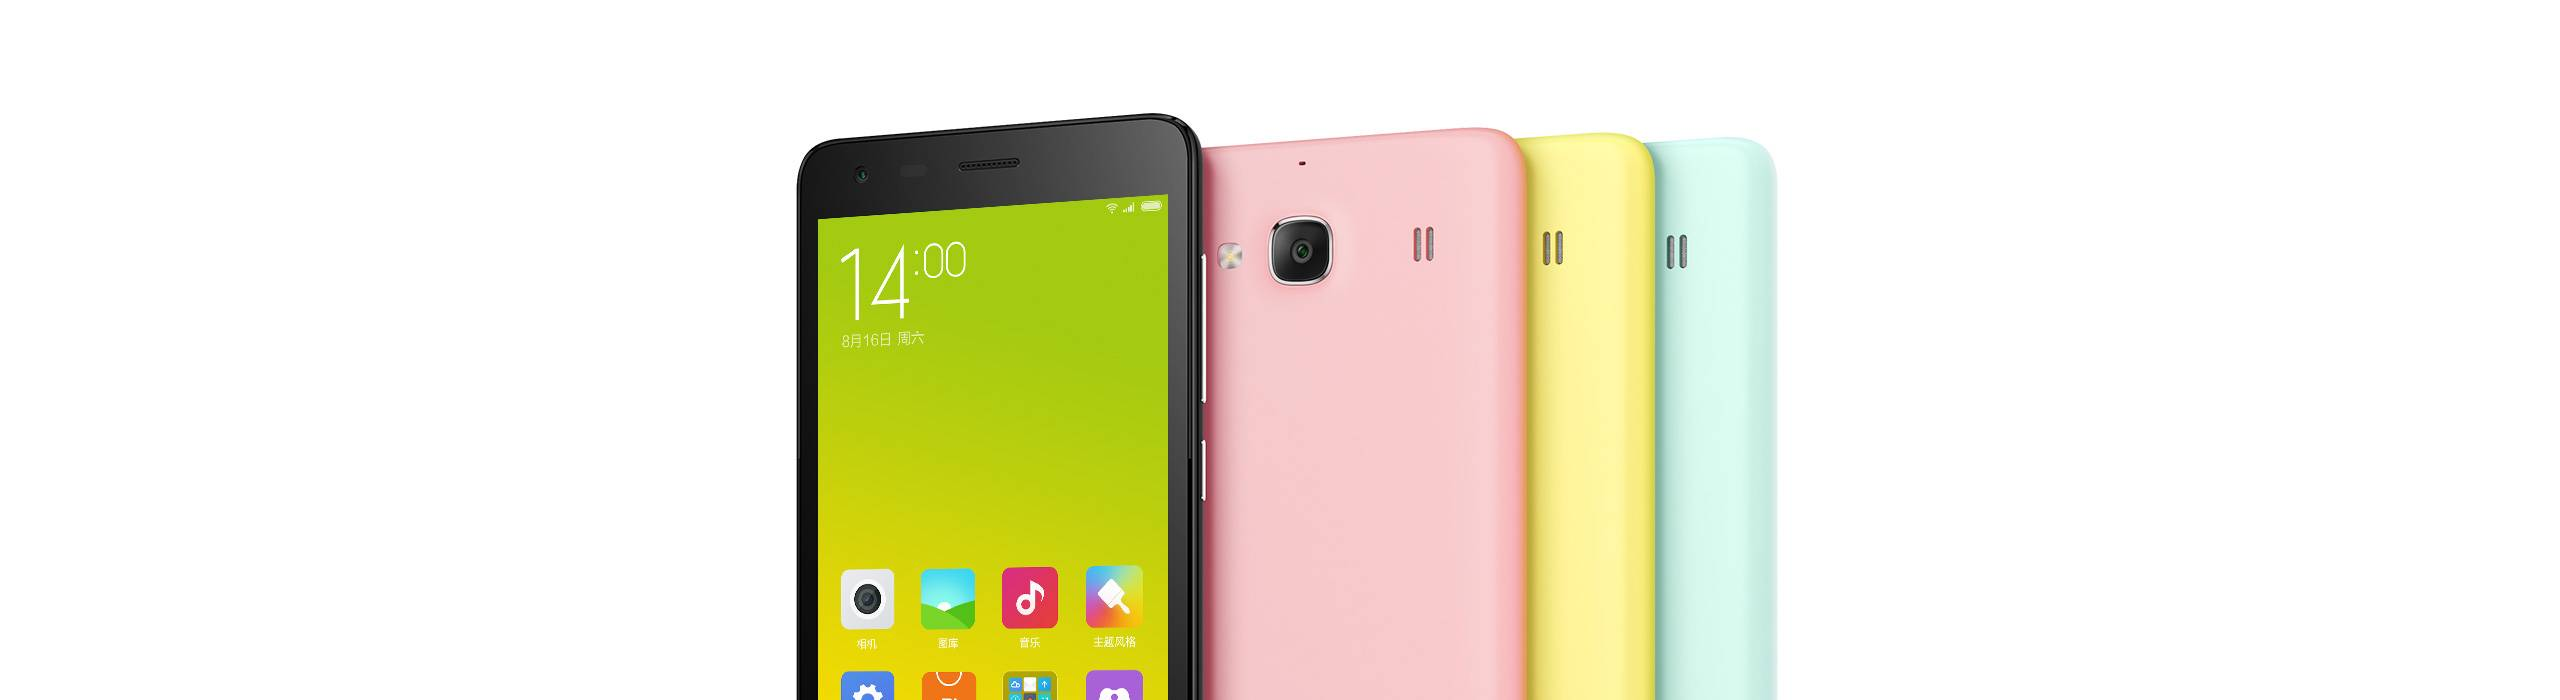 gallery-3 redmi2